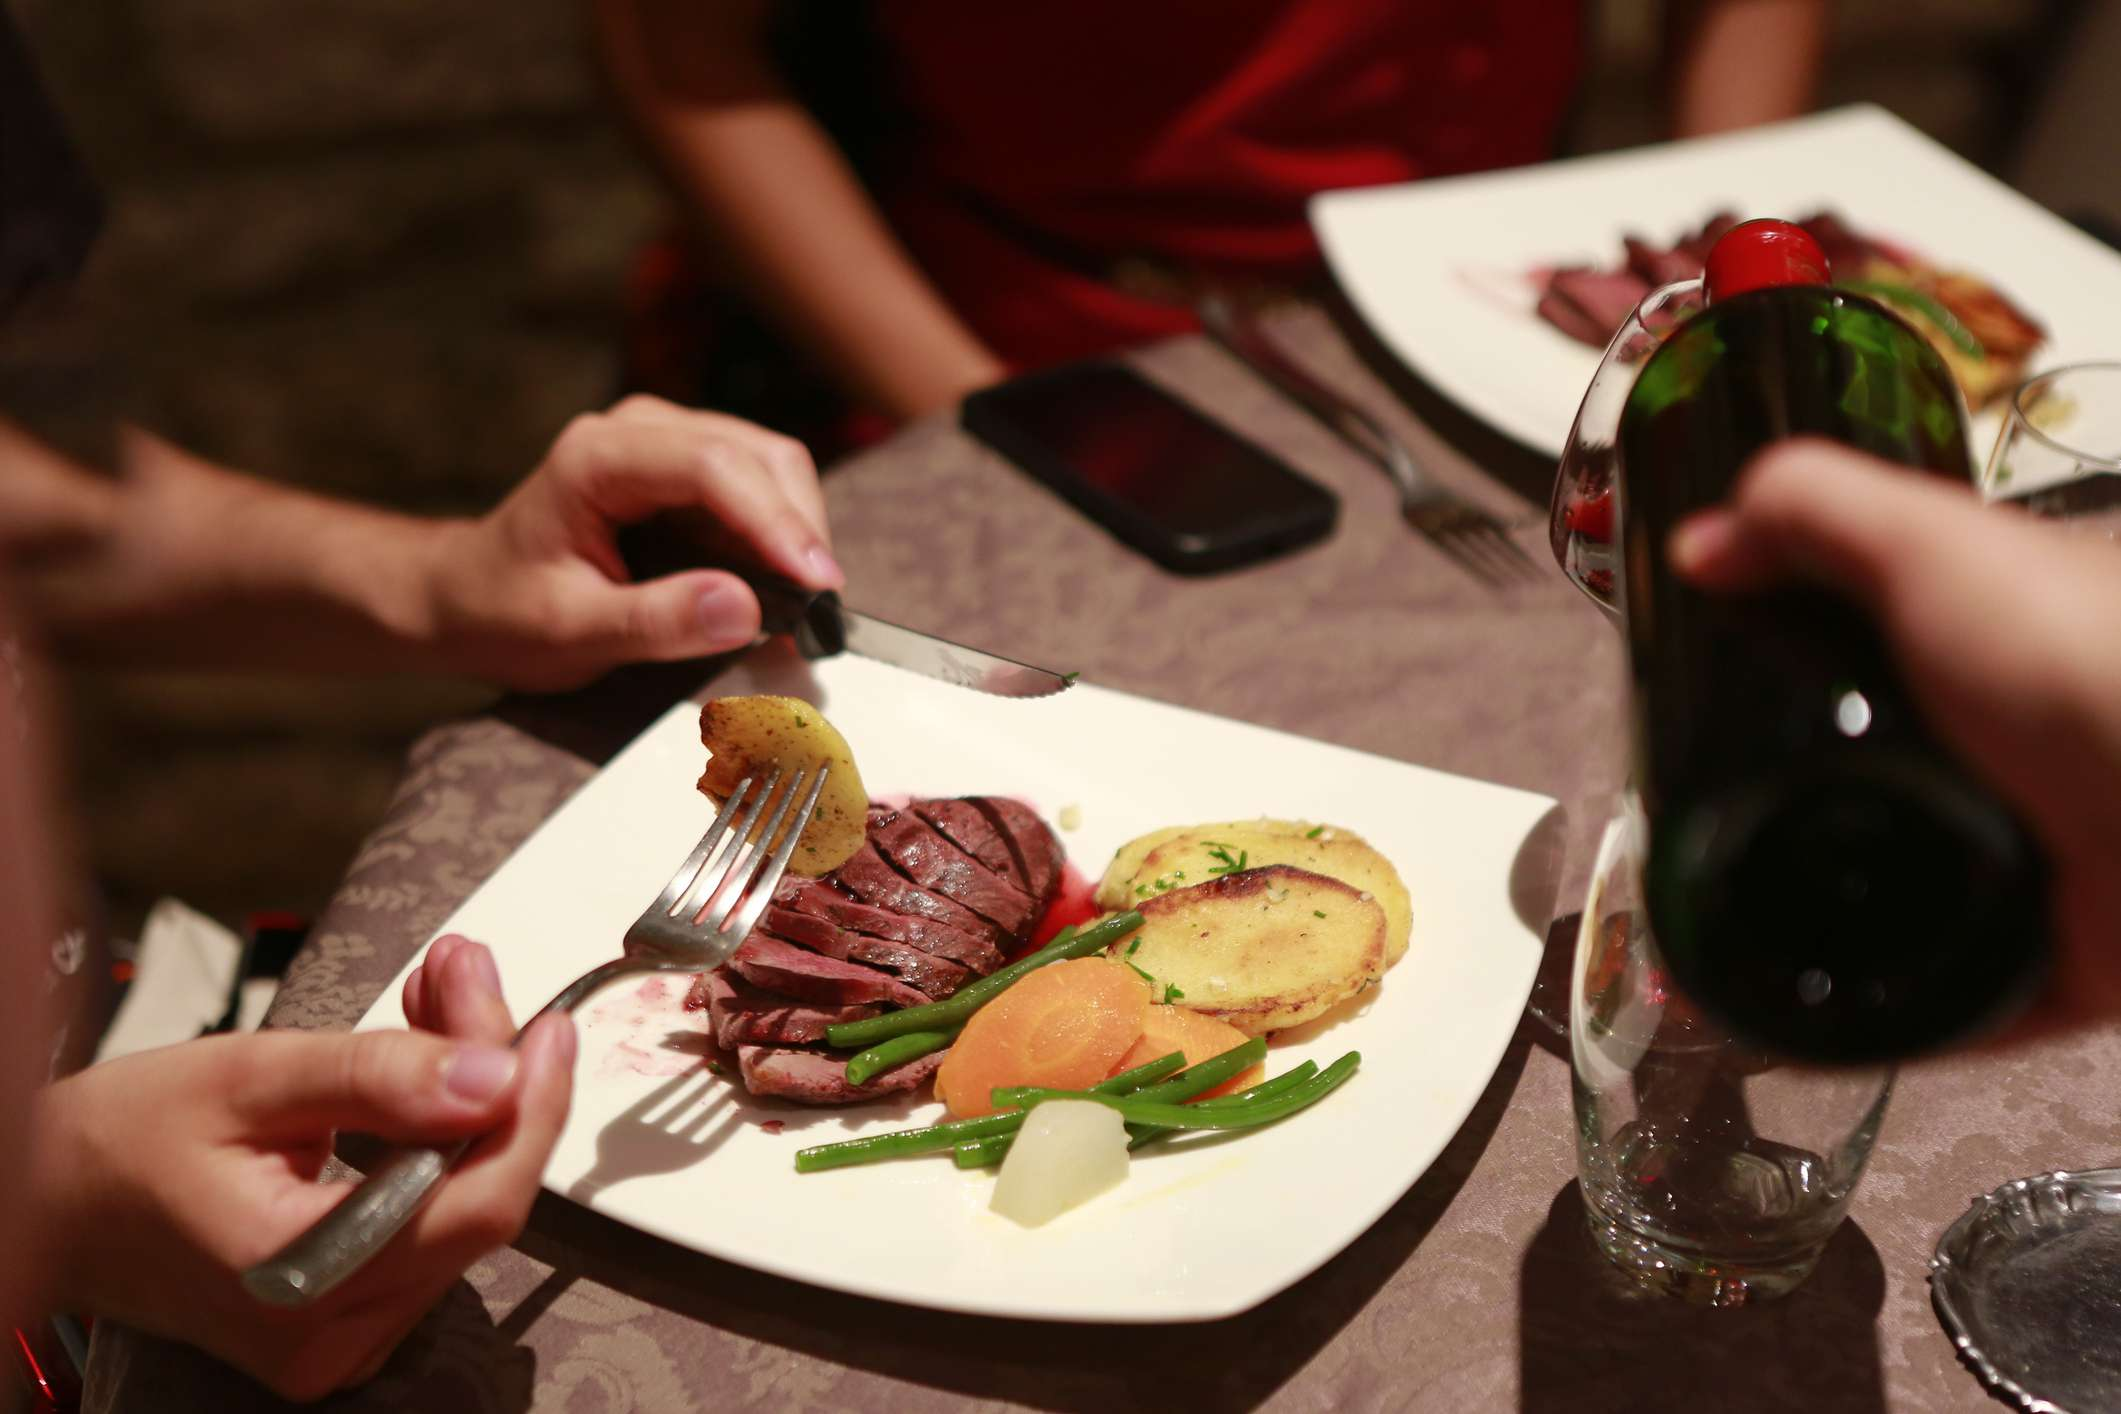 Private supper clubs in Paris are increasingly popular among visitors looking for more authentic dining experiences